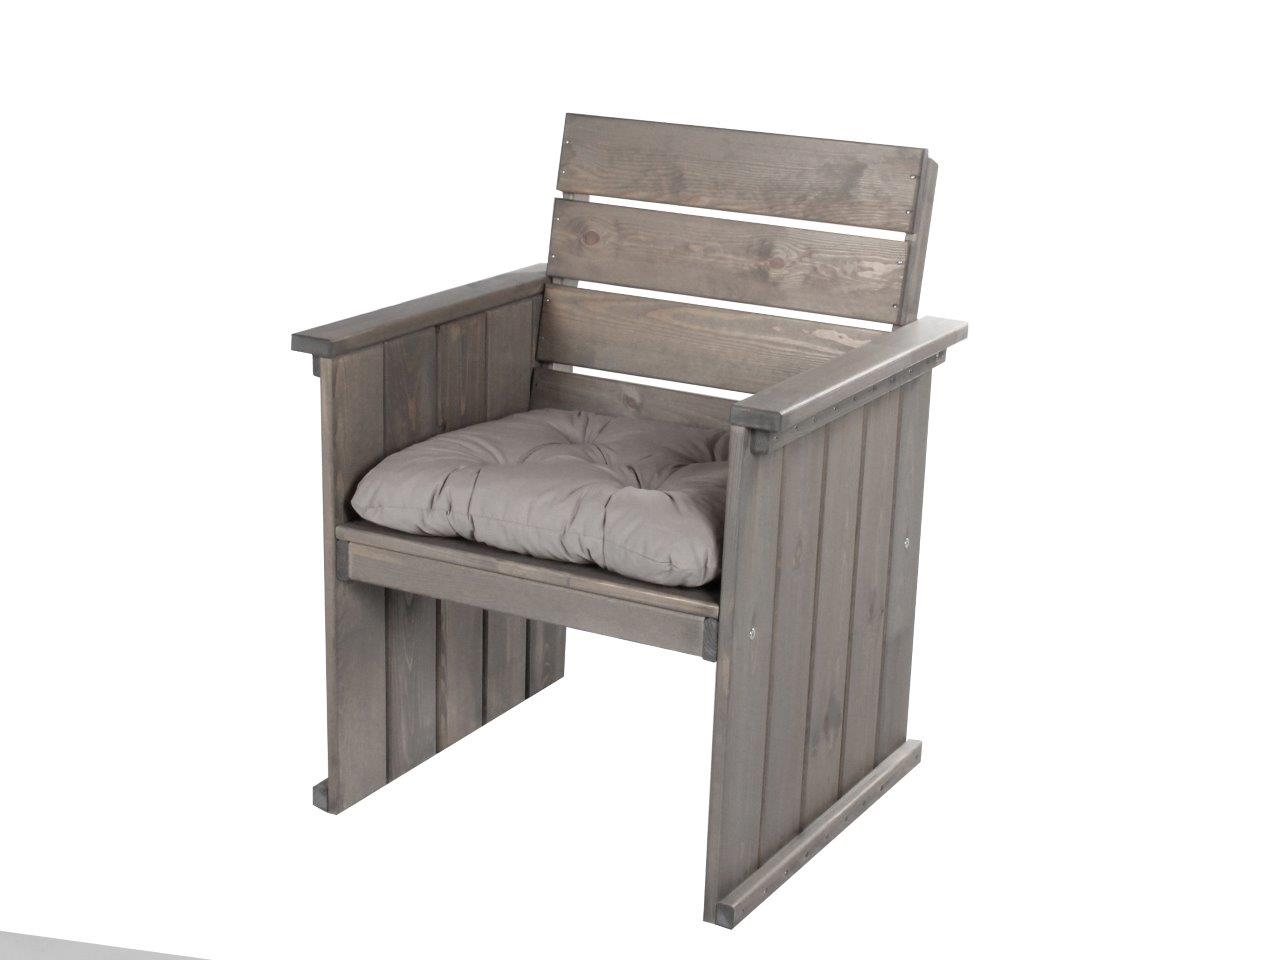 massiver sessel massivholz taupe strandgut europa gartenm bel holz stuhl neu. Black Bedroom Furniture Sets. Home Design Ideas